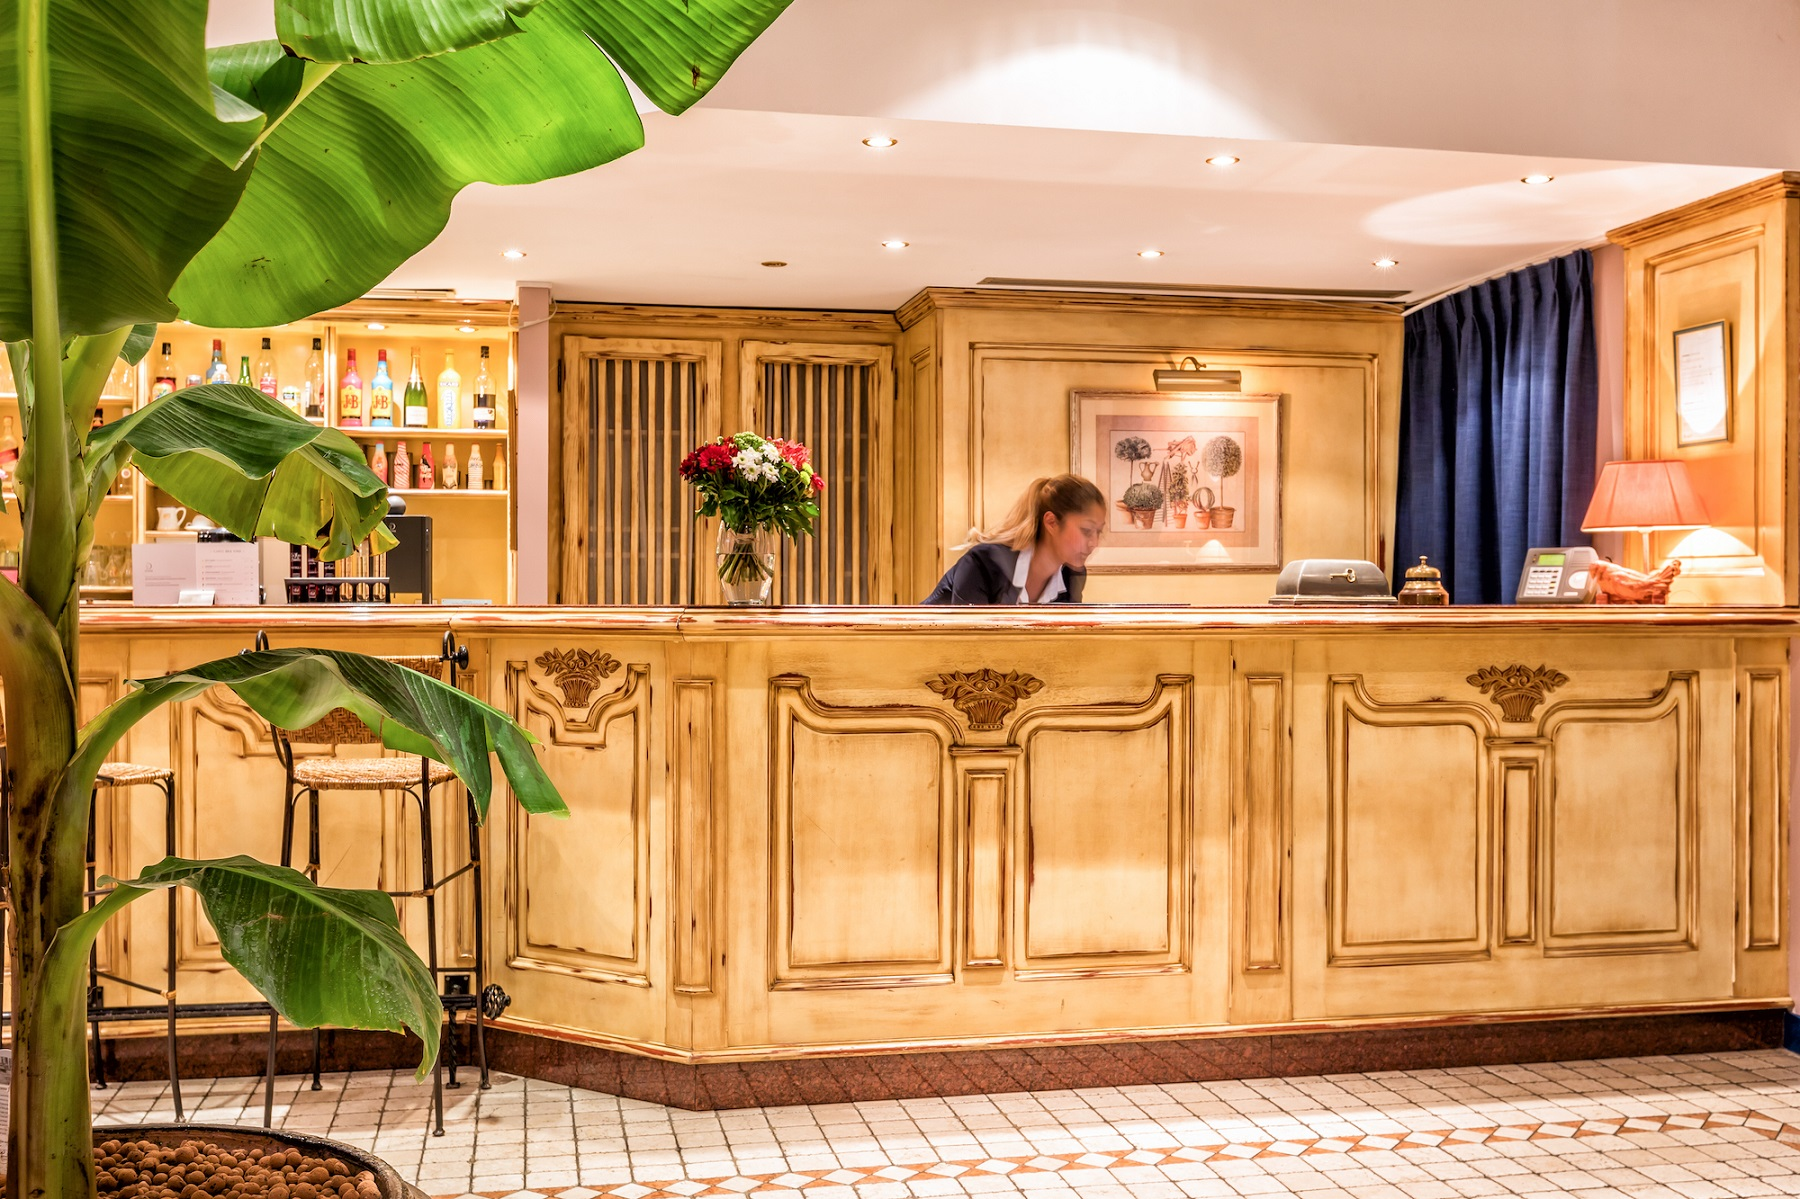 46/Galerie/Villa-Alessandra-Hotel Business Trip - Champs Elysees_1.jpg